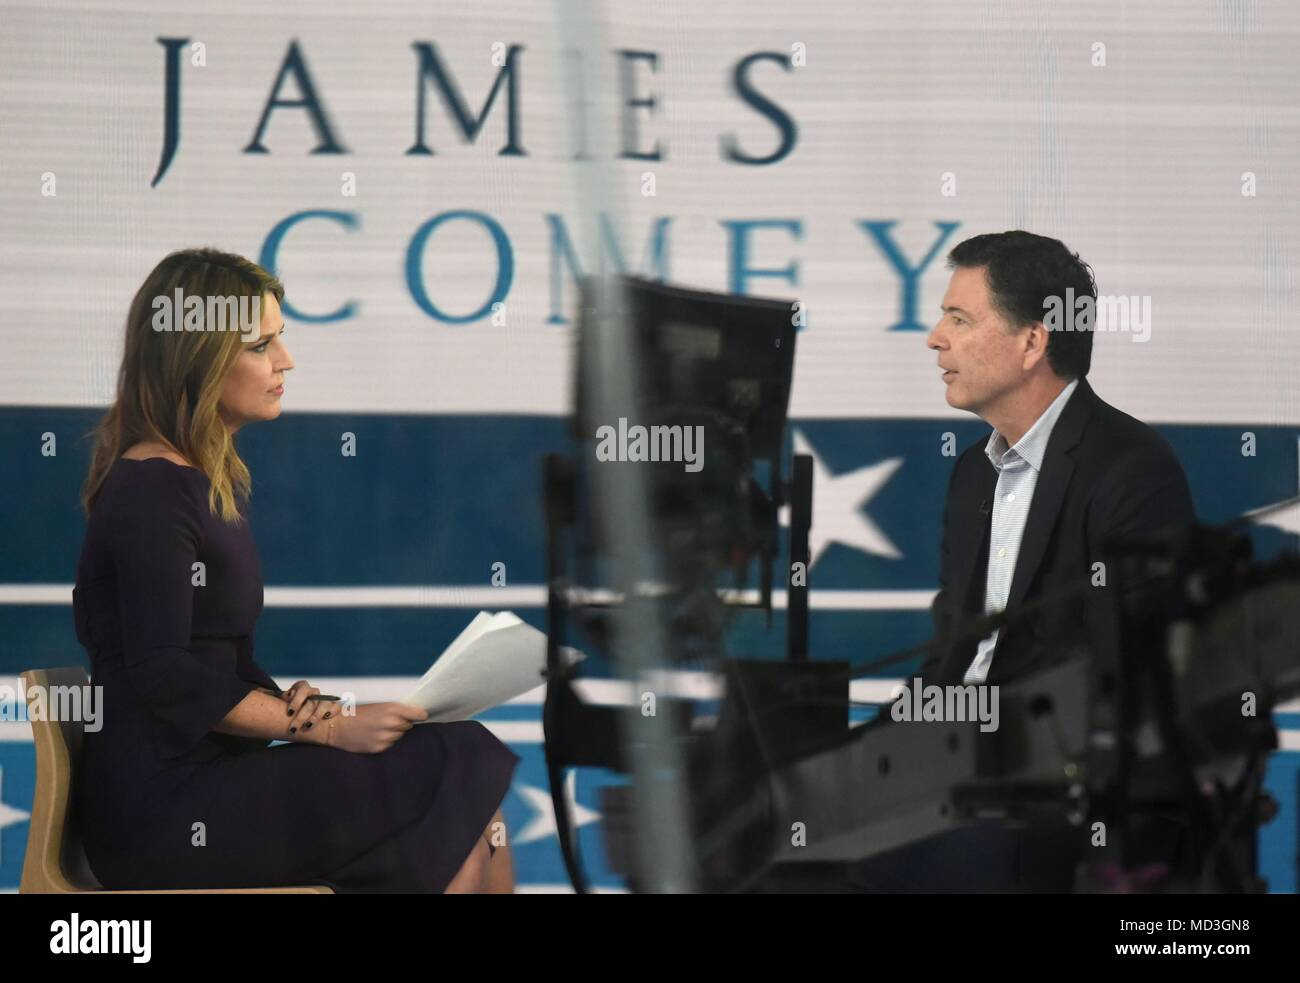 New York, NY, USA. 18th Apr, 2018. Savannah Guthrie, James Comey, the former Director of the FBI, appears on The Today Show to promote his book: A Higher Loyalty: Truth, Lies, and Leadership out and about for Celebrity Candids - WED, New York, NY April 18, 2018. Credit: Derek Storm/Everett Collection/Alamy Live News - Stock Image